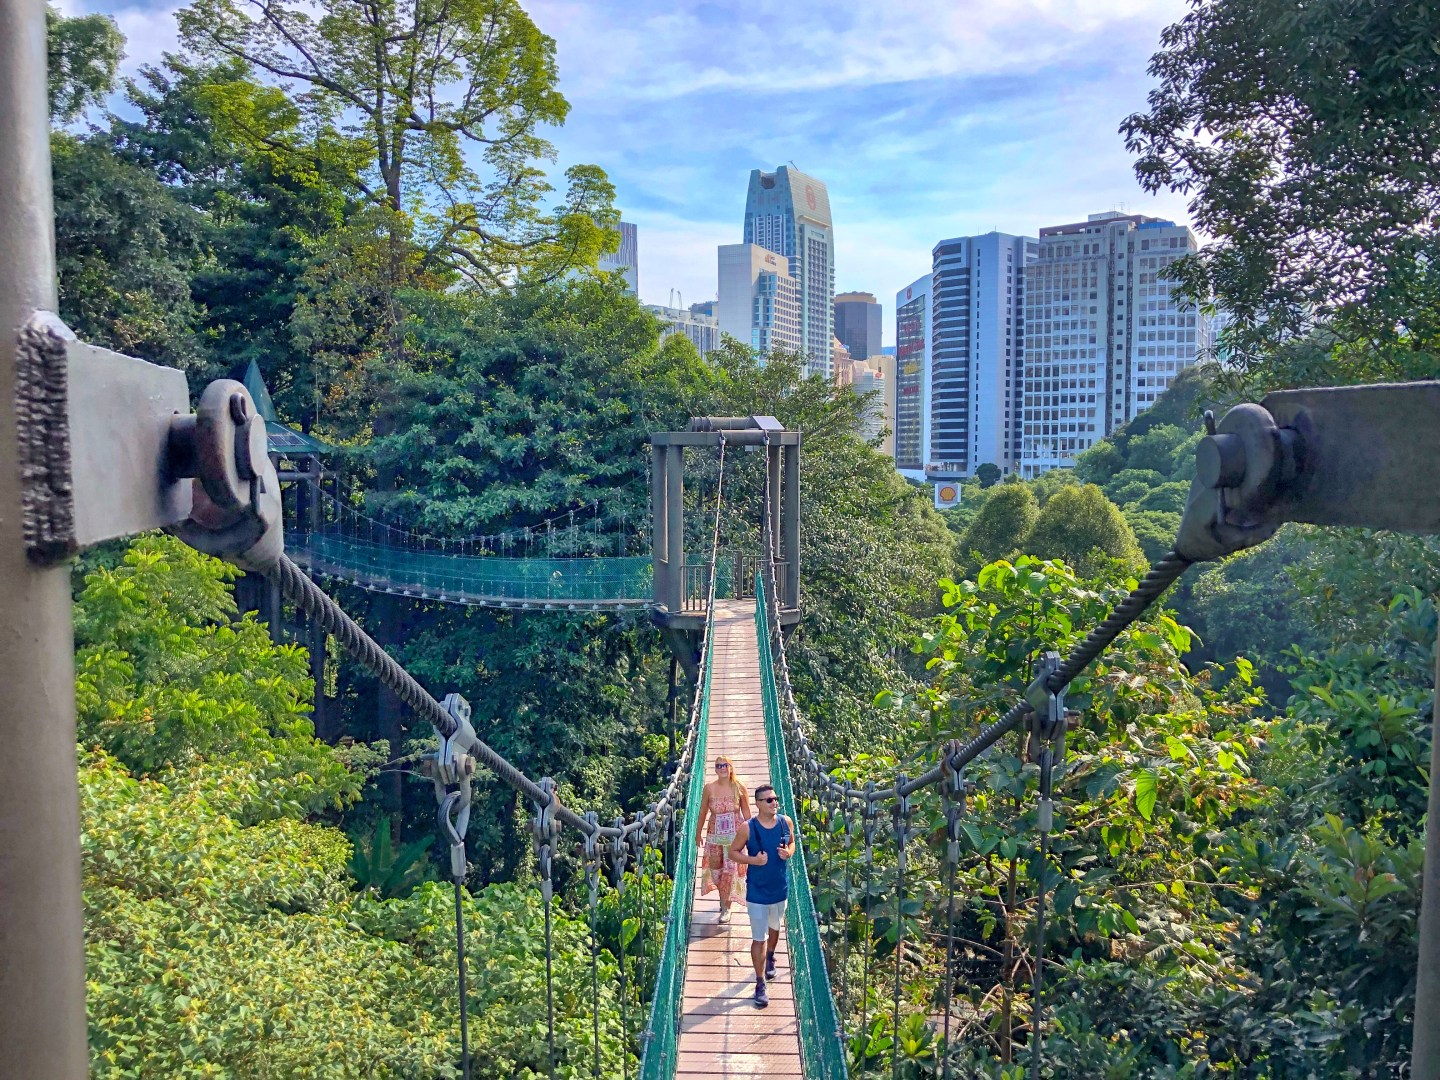 KL Forest Eco Park: Exploring the Jungle in the City - Nothing Familiar